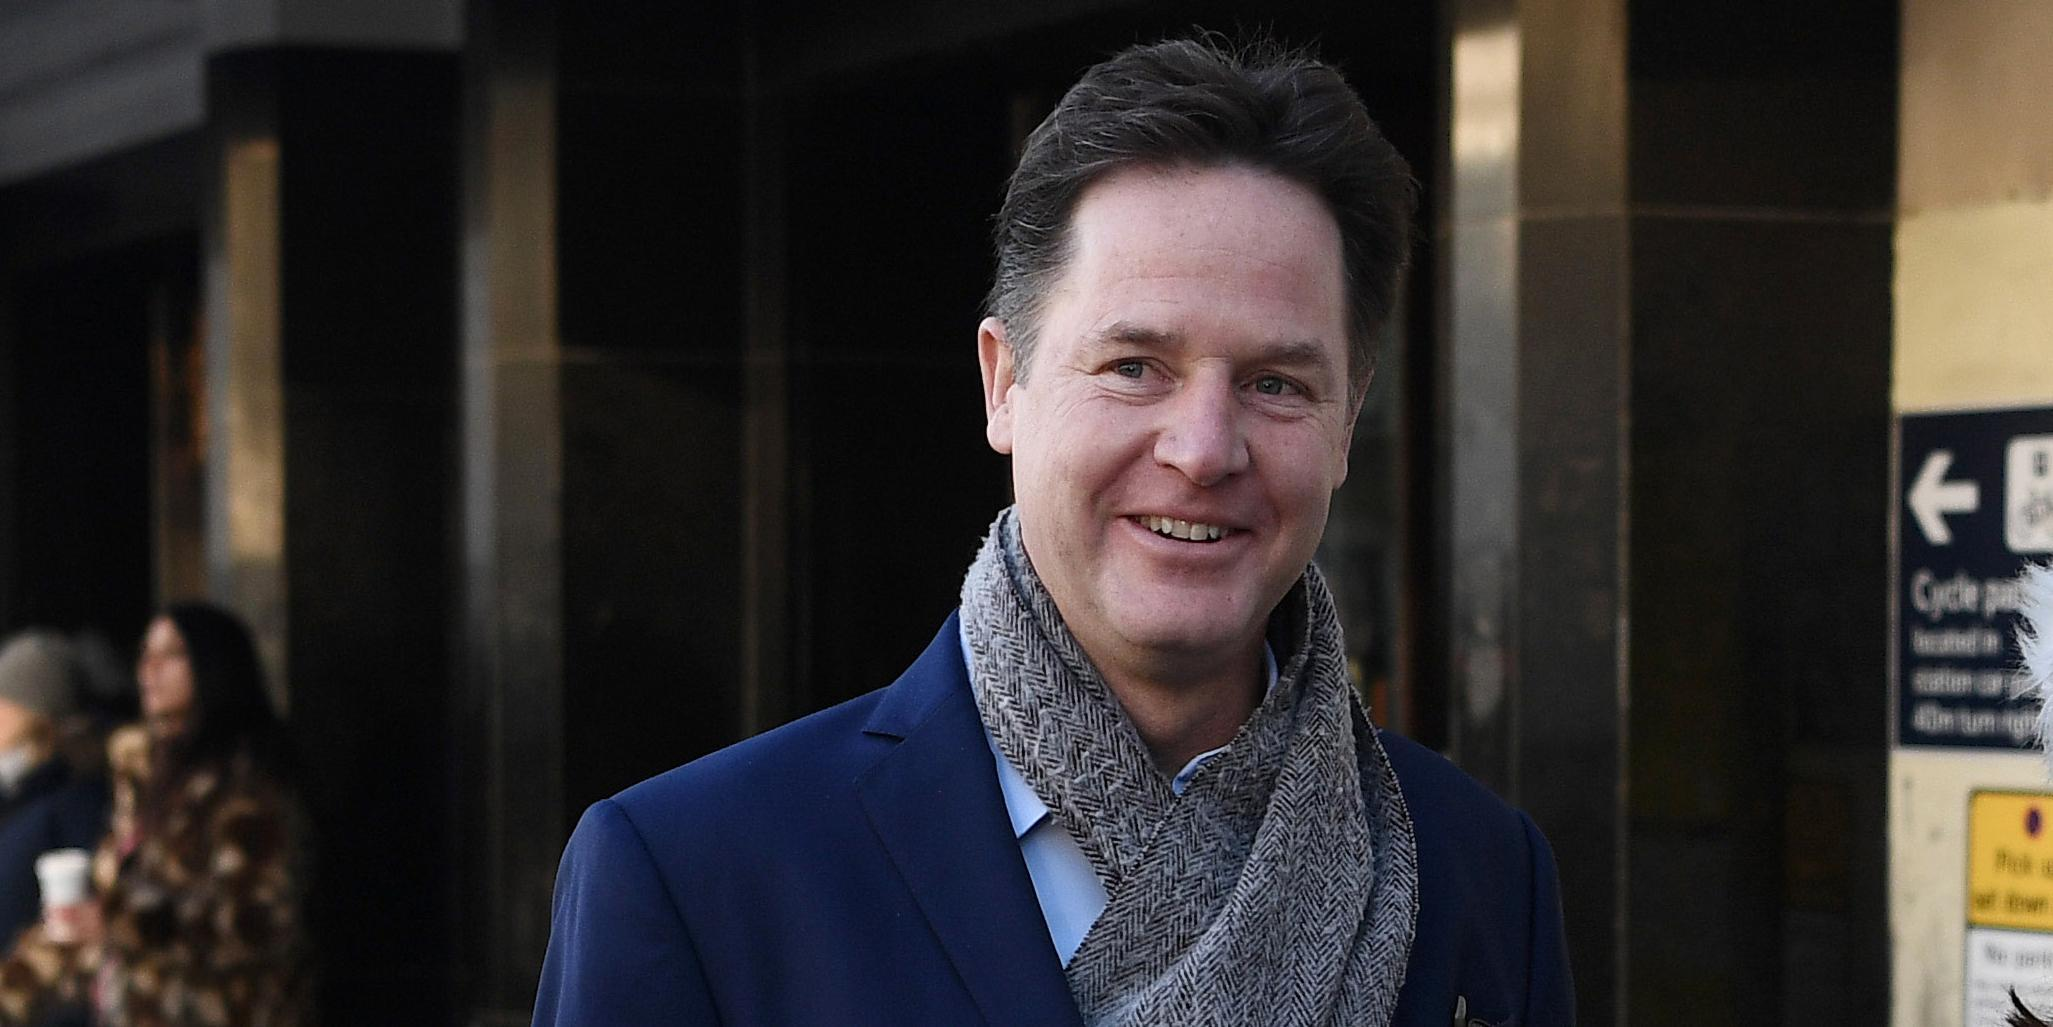 Brexit: Nick Clegg is first senior UK politician to back calls for Britons to retain EU citizenship